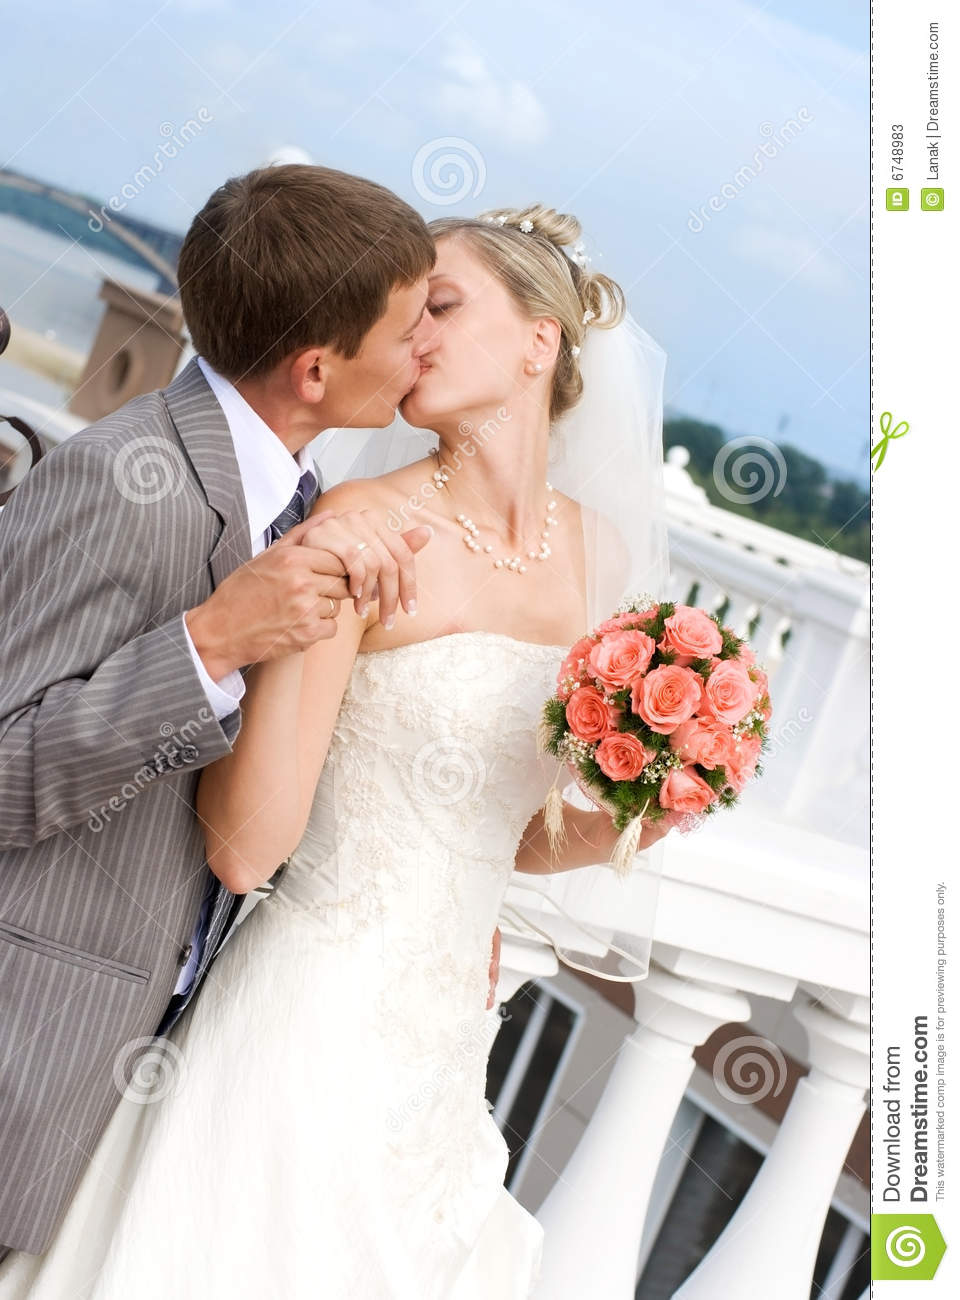 Bride And Groom Kissing Outdoor Stock Image - Image: 6748983